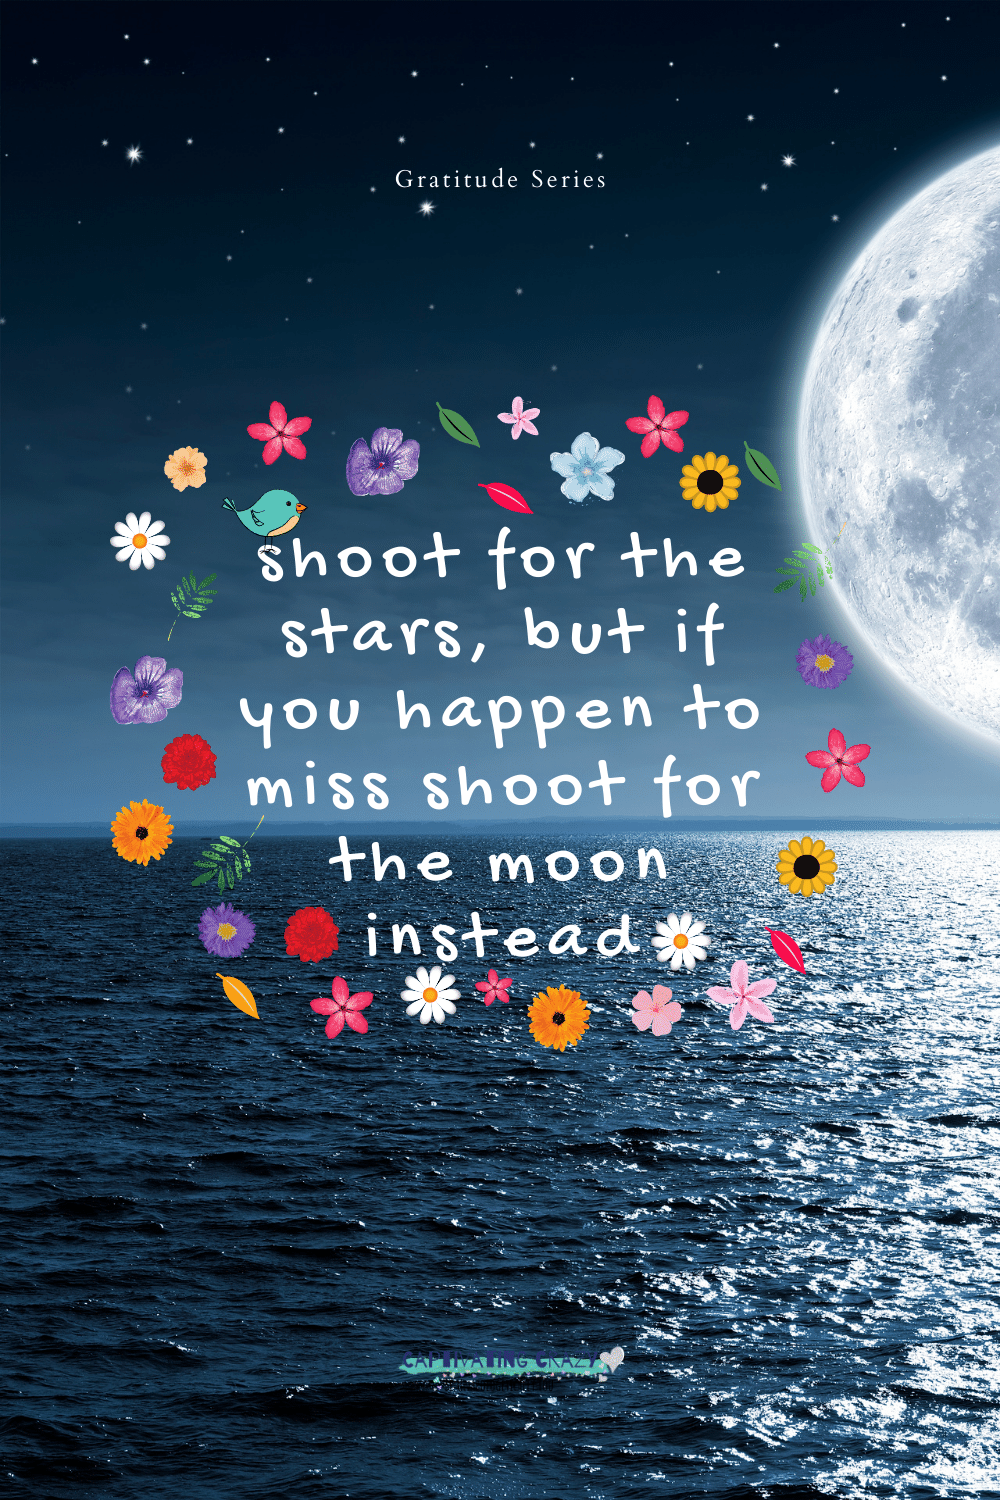 Shoot for the stars quote by Neil Armstrong